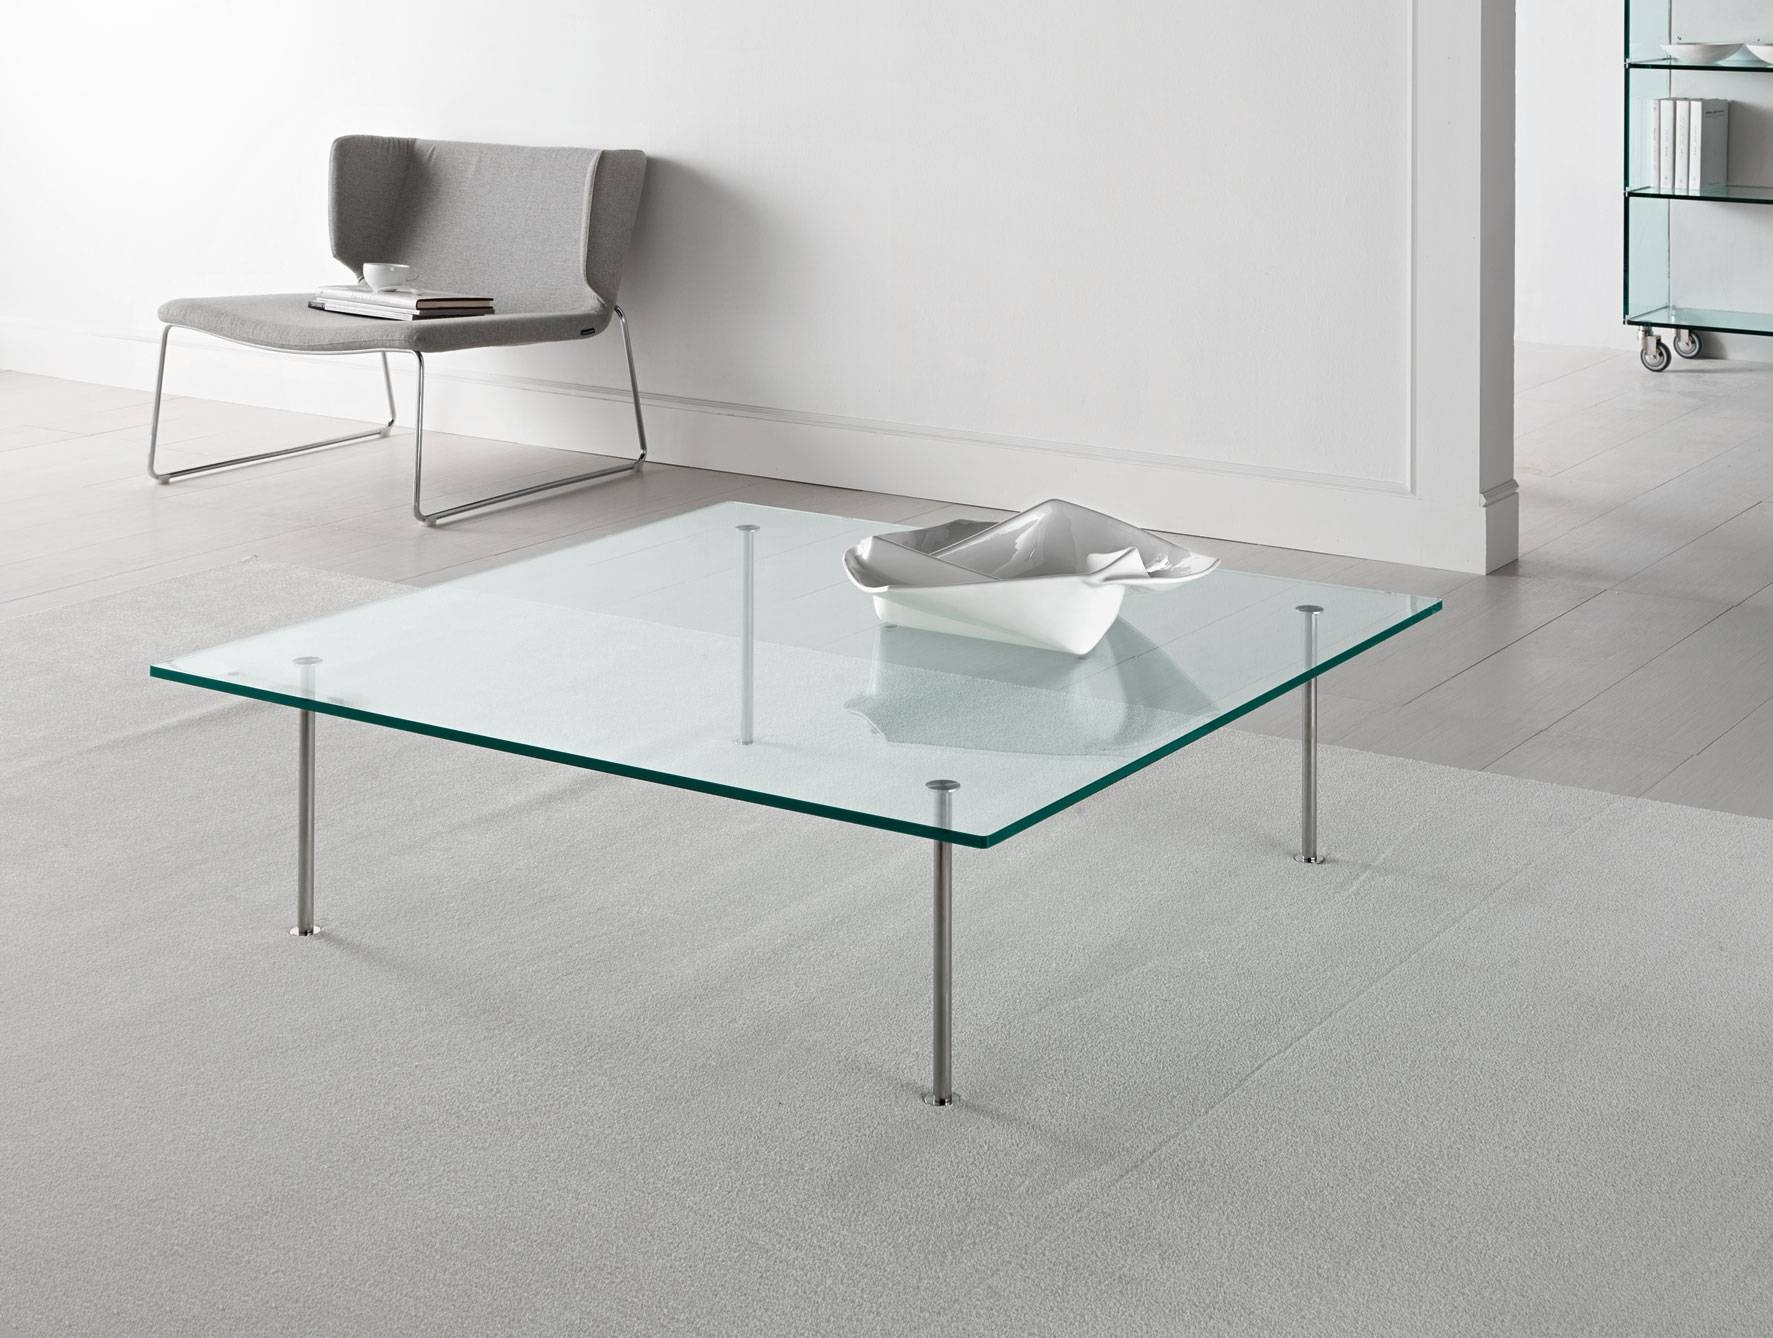 Modern Glass Coffee Table Chrome Finish Tempered Glass Surface within Steel and Glass Coffee Tables (Image 21 of 30)